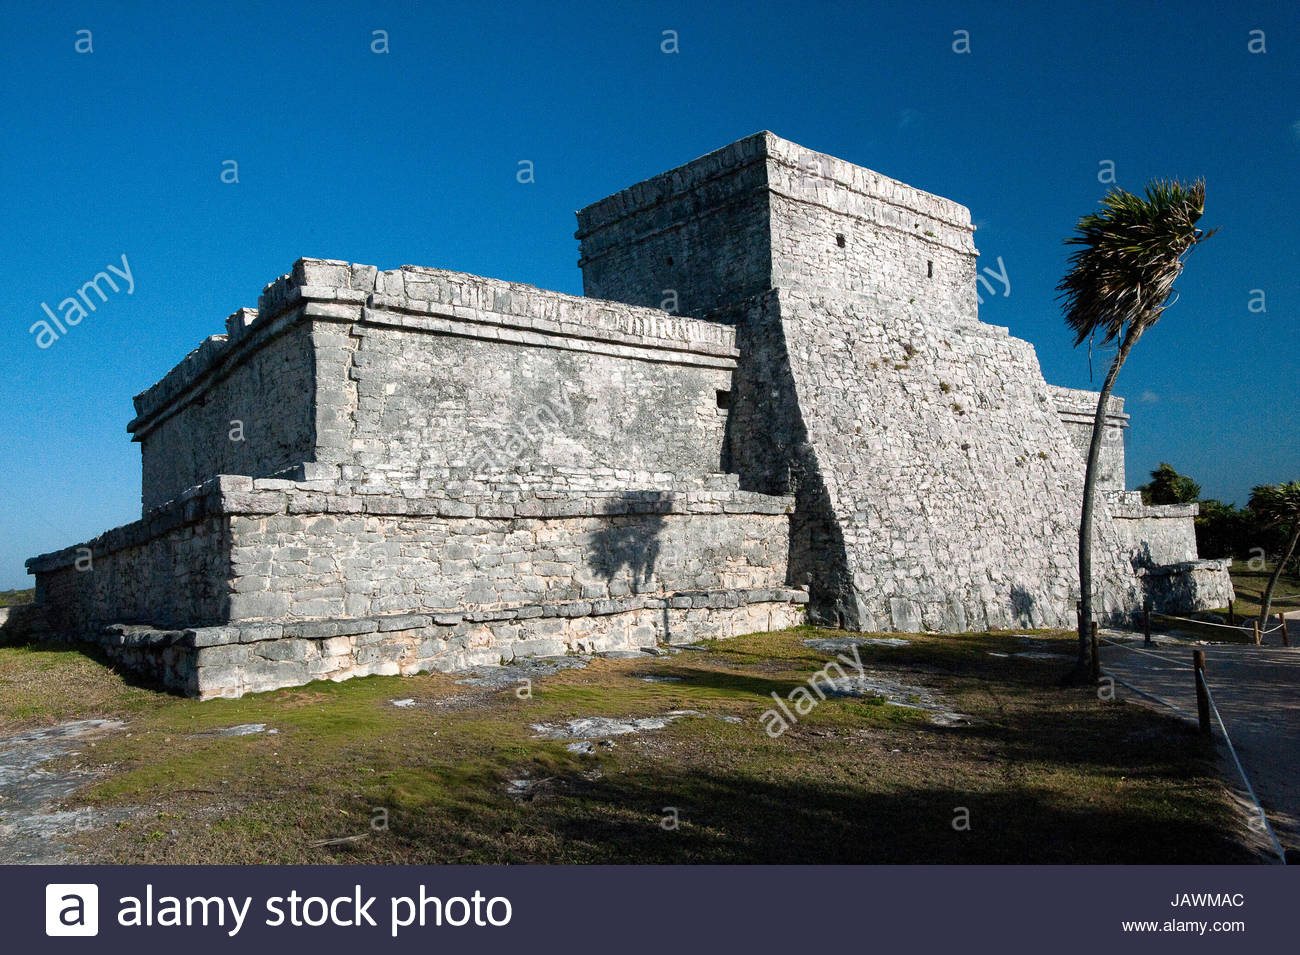 The Castillo at the Tulum ruins. - Stock Image